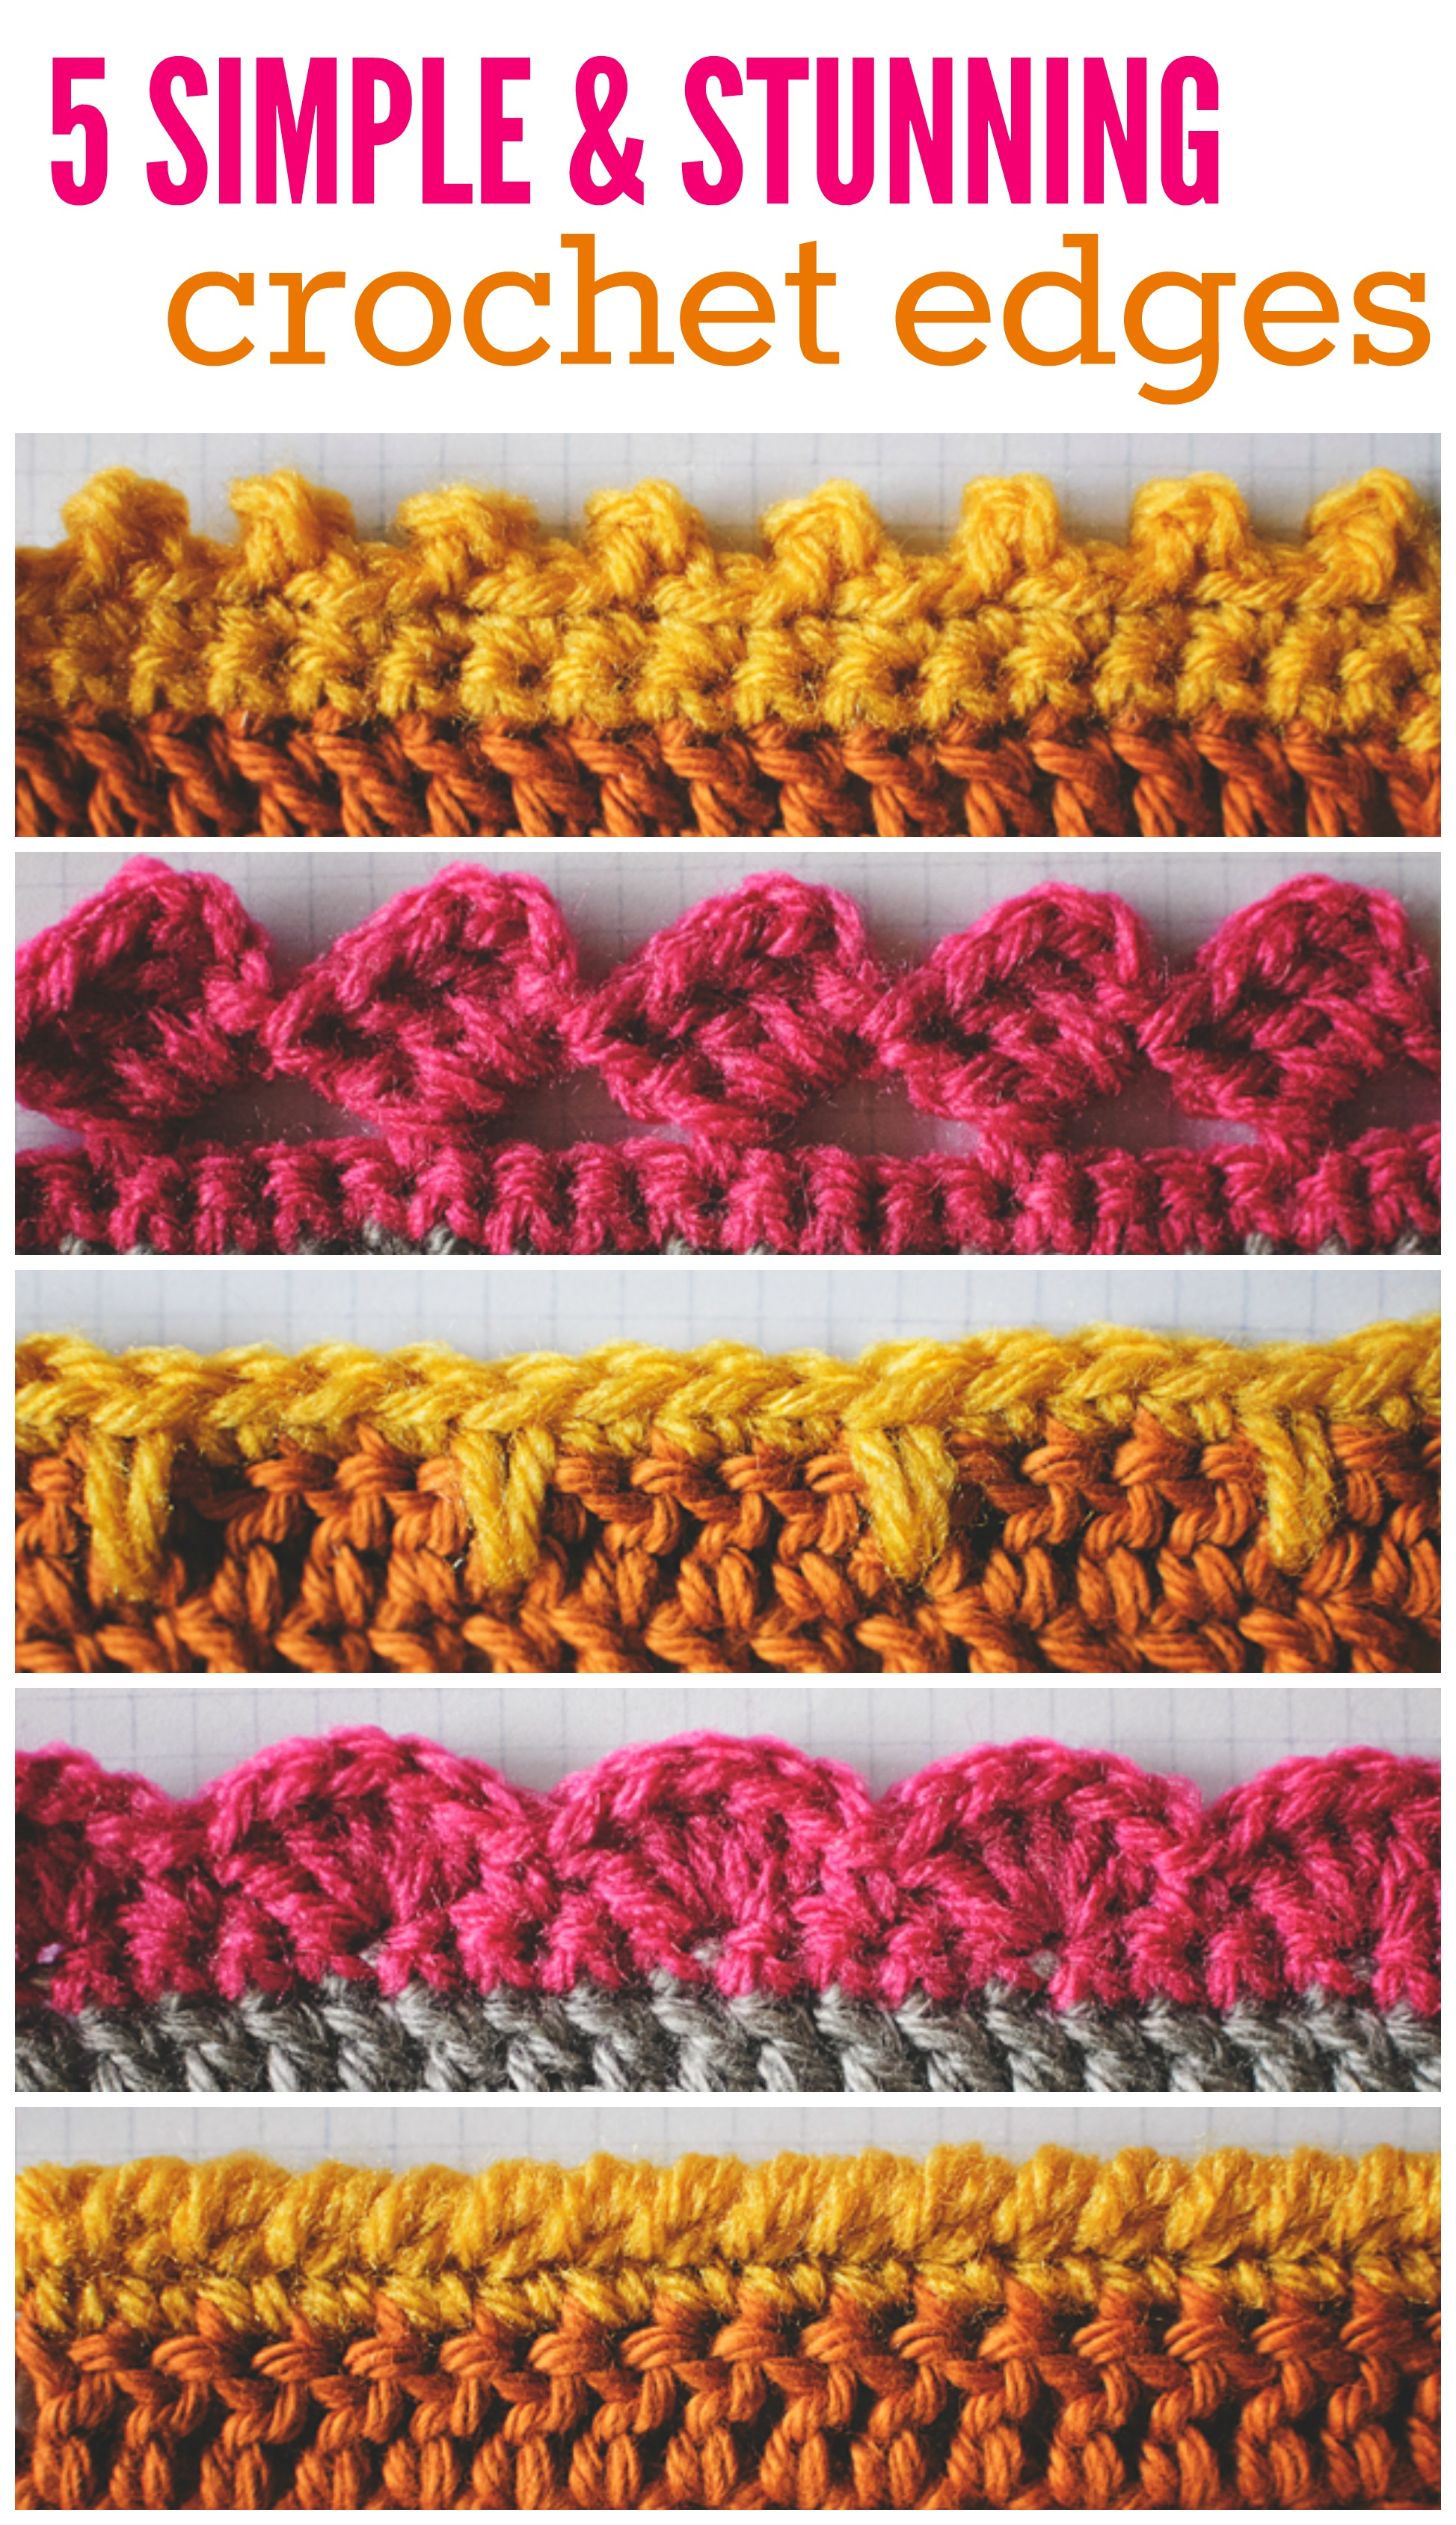 Crochet Edge Pinterest